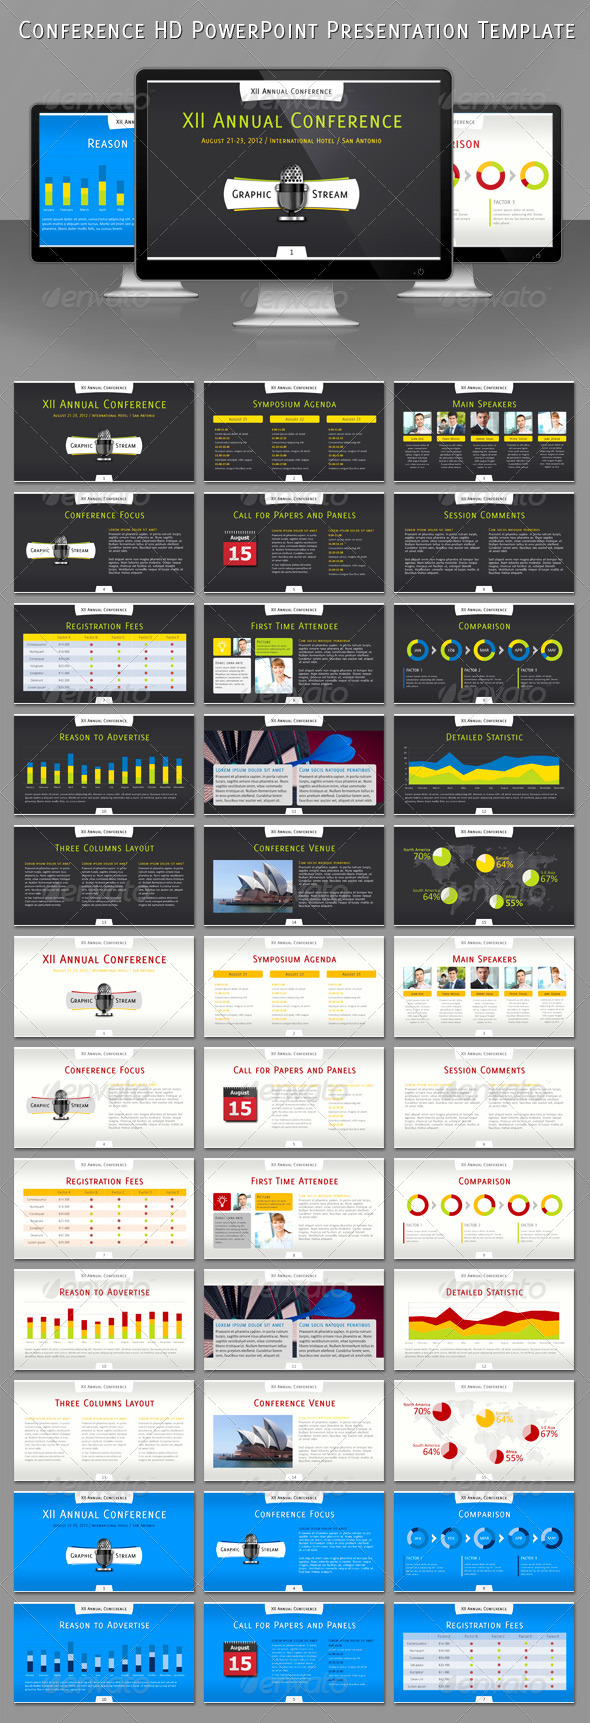 Conference HD PowerPoint Presentation Template - Powerpoint Templates Presentation Templates